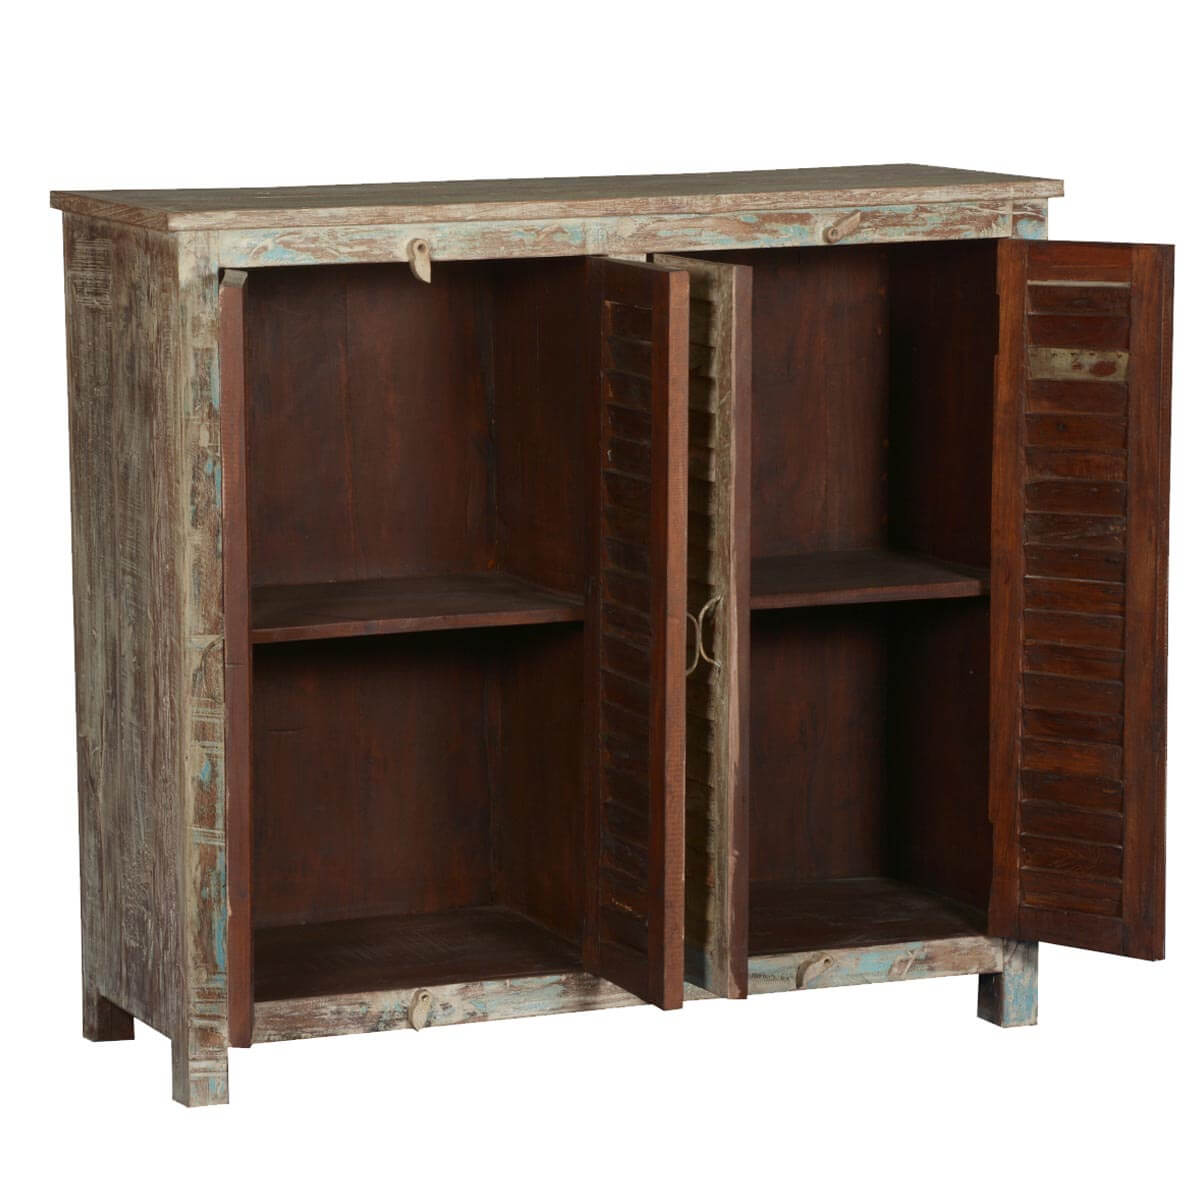 Frosted shutter door reclaimed wood buffet cabinet